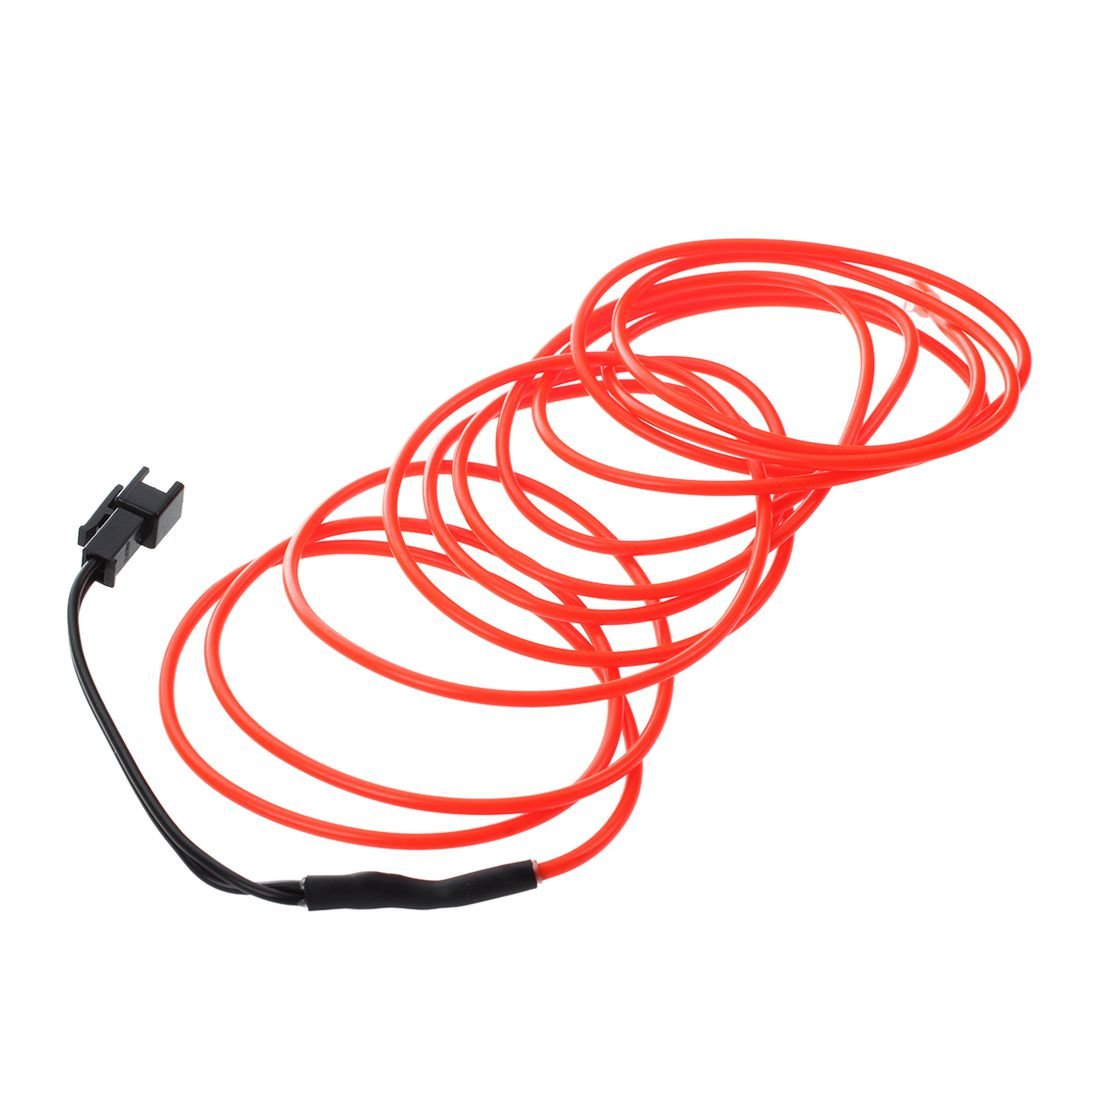 TOOGOO LED Flexible EL Wire Neon Glow Tube Lamp Light DC 12V Inverter for Car, 2M Red by TOOGOO (Image #3)